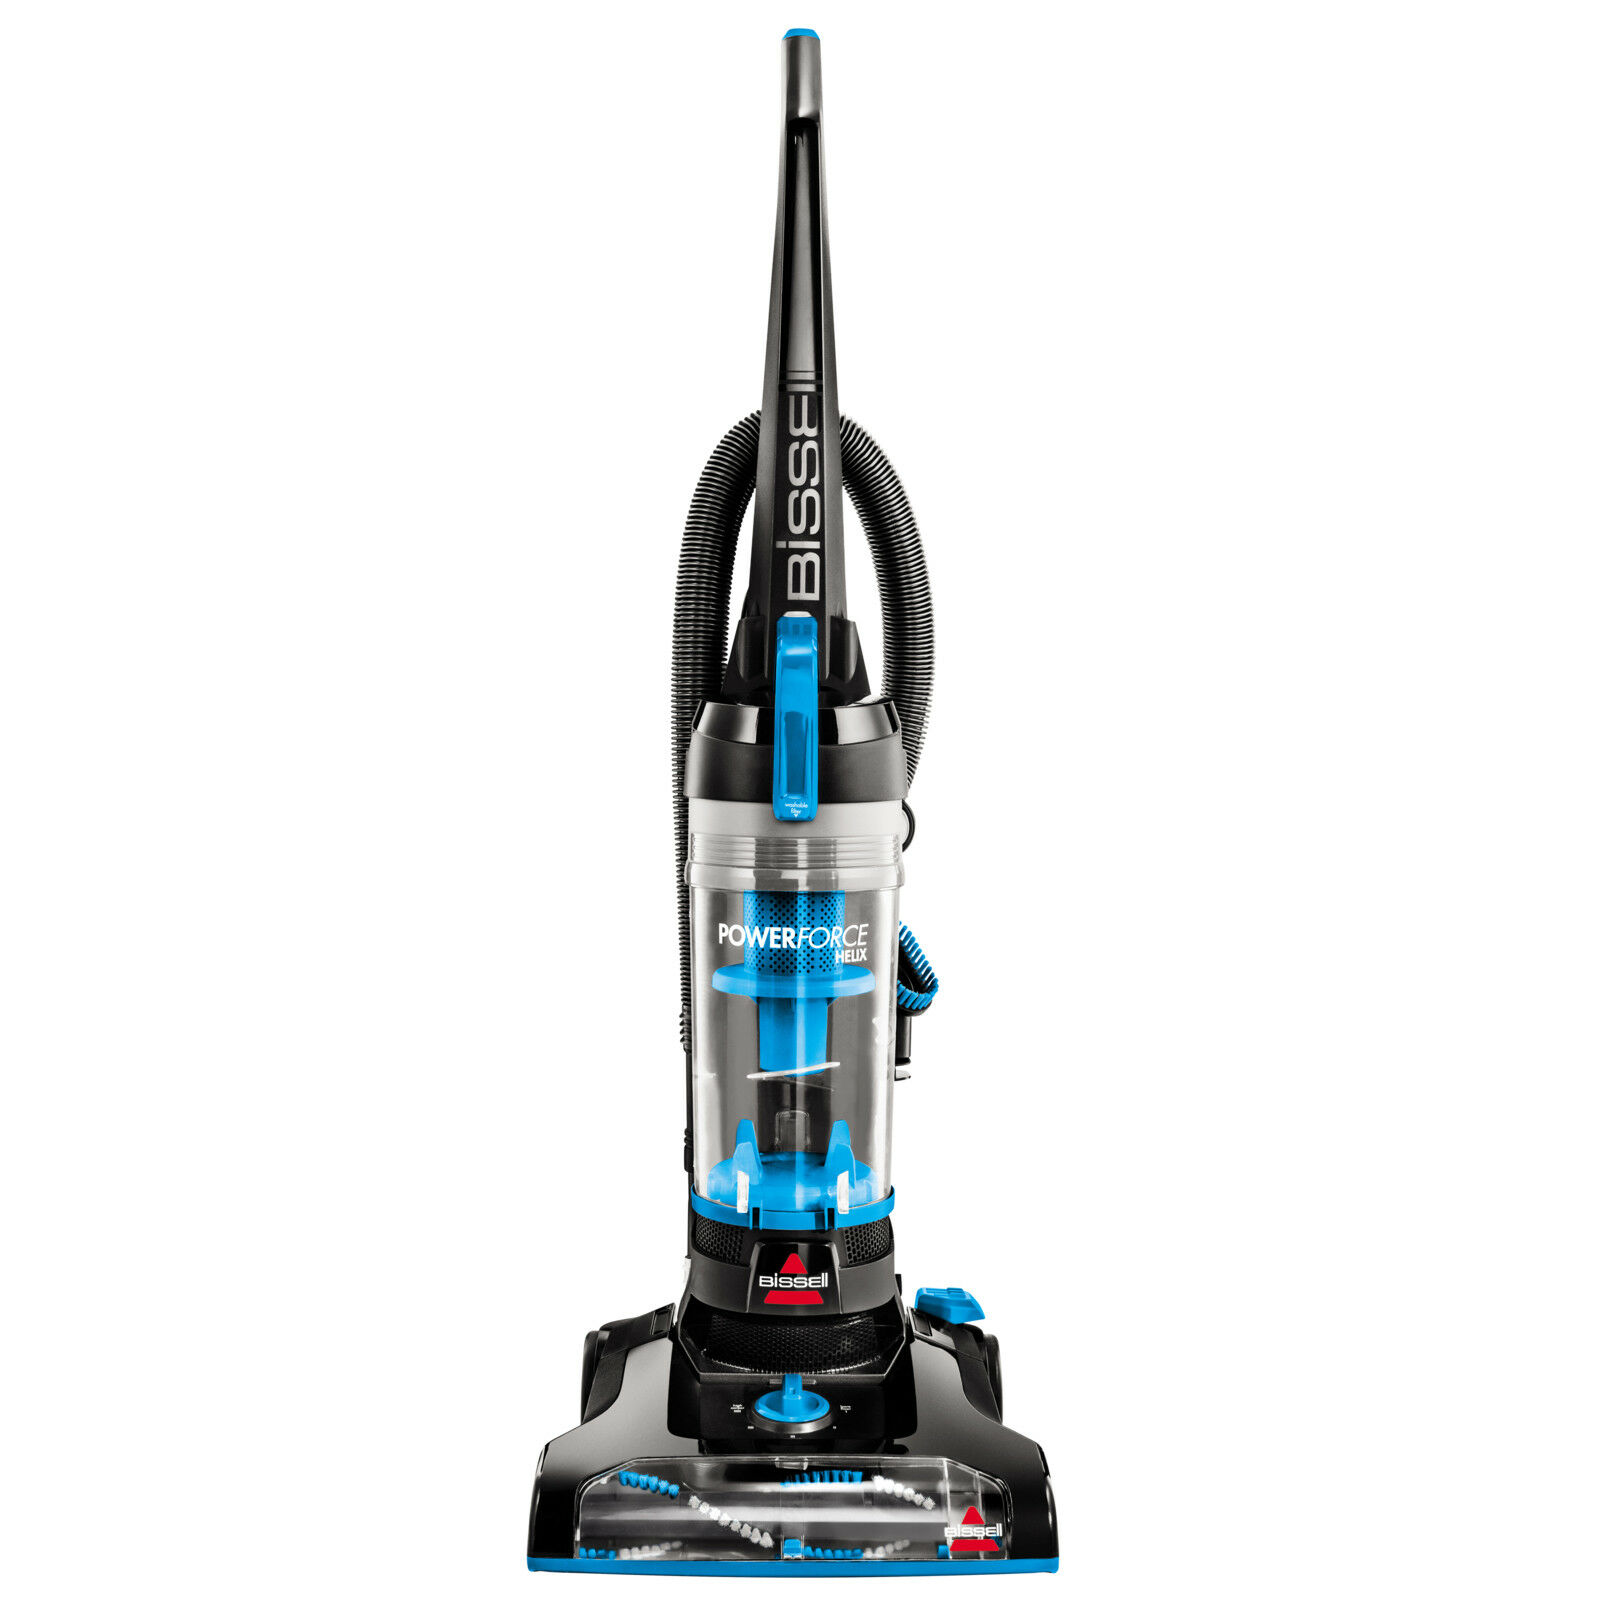 BISSELL PowerForce Helix Bagless Upright Vacuum Cleaner Carpet Cleaning bluee NEW